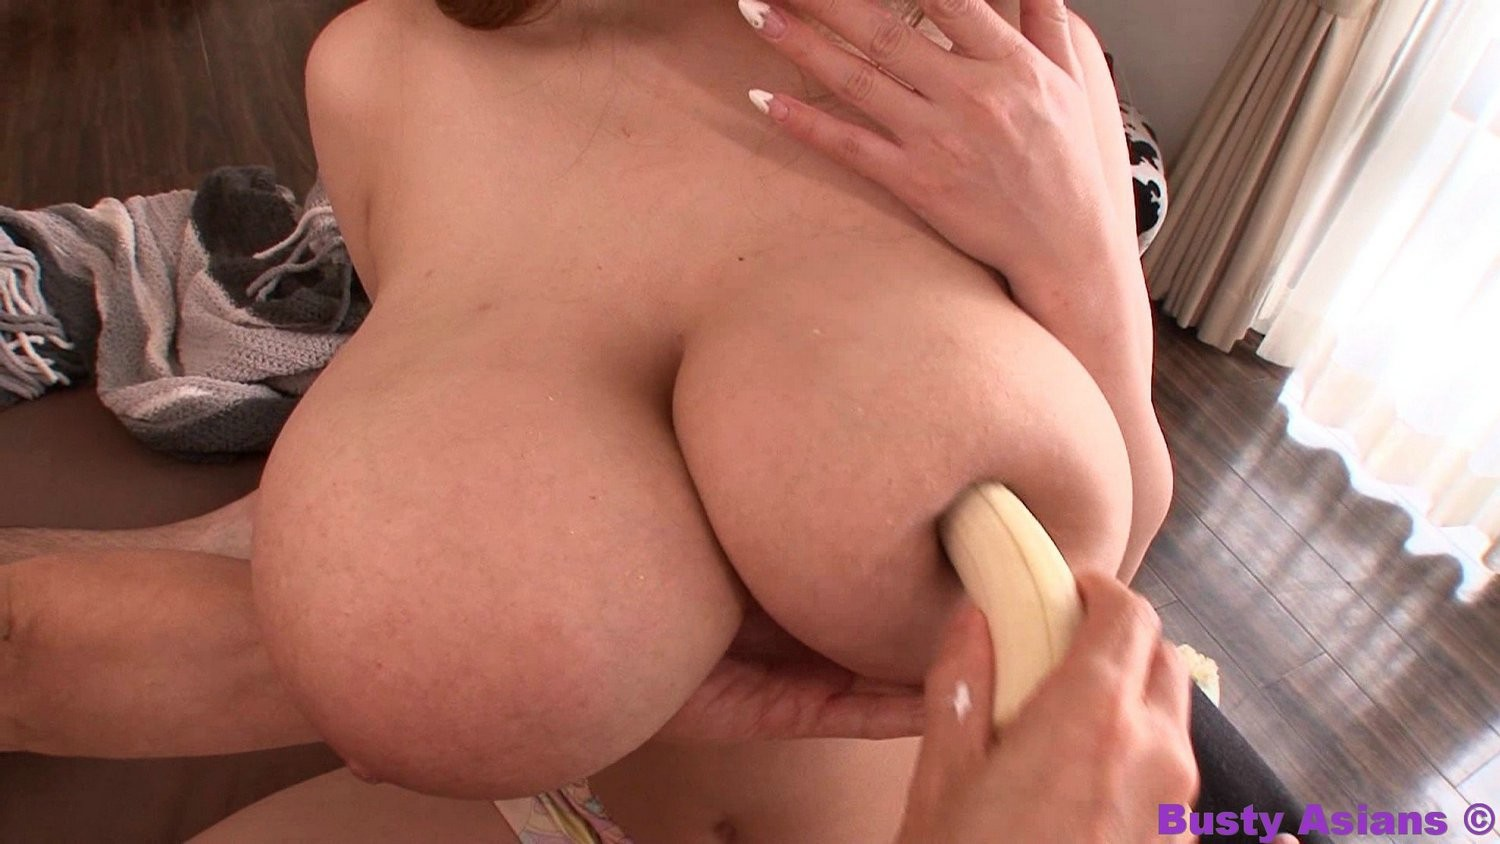 Appealing eastern adolescent hitomi tanaka rubbing her giant titties